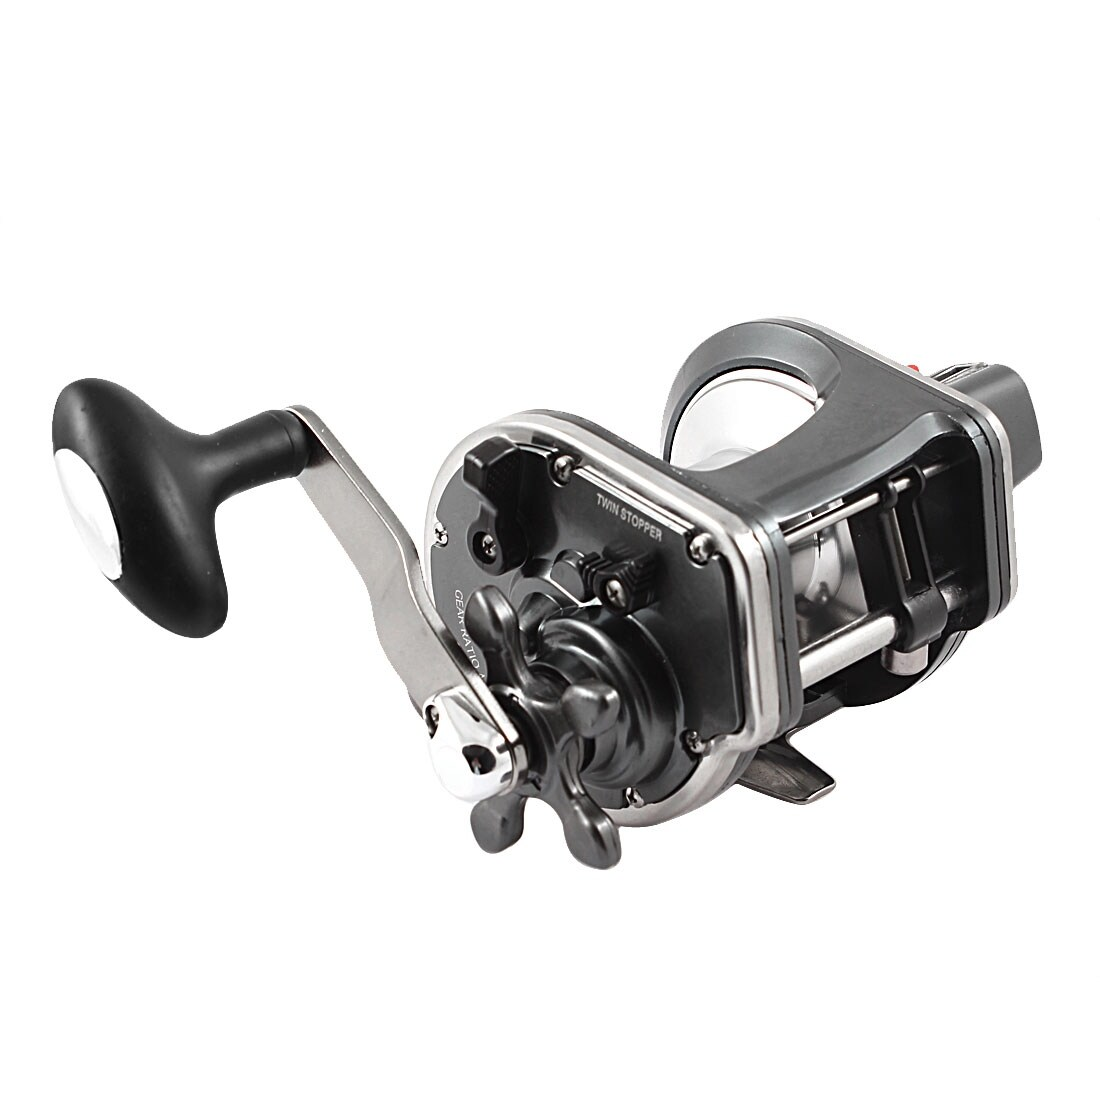 Silver Tone 4.0:1 Gear Ratio 3 Ball Bearings Power Handle Spinning Fishing Reel